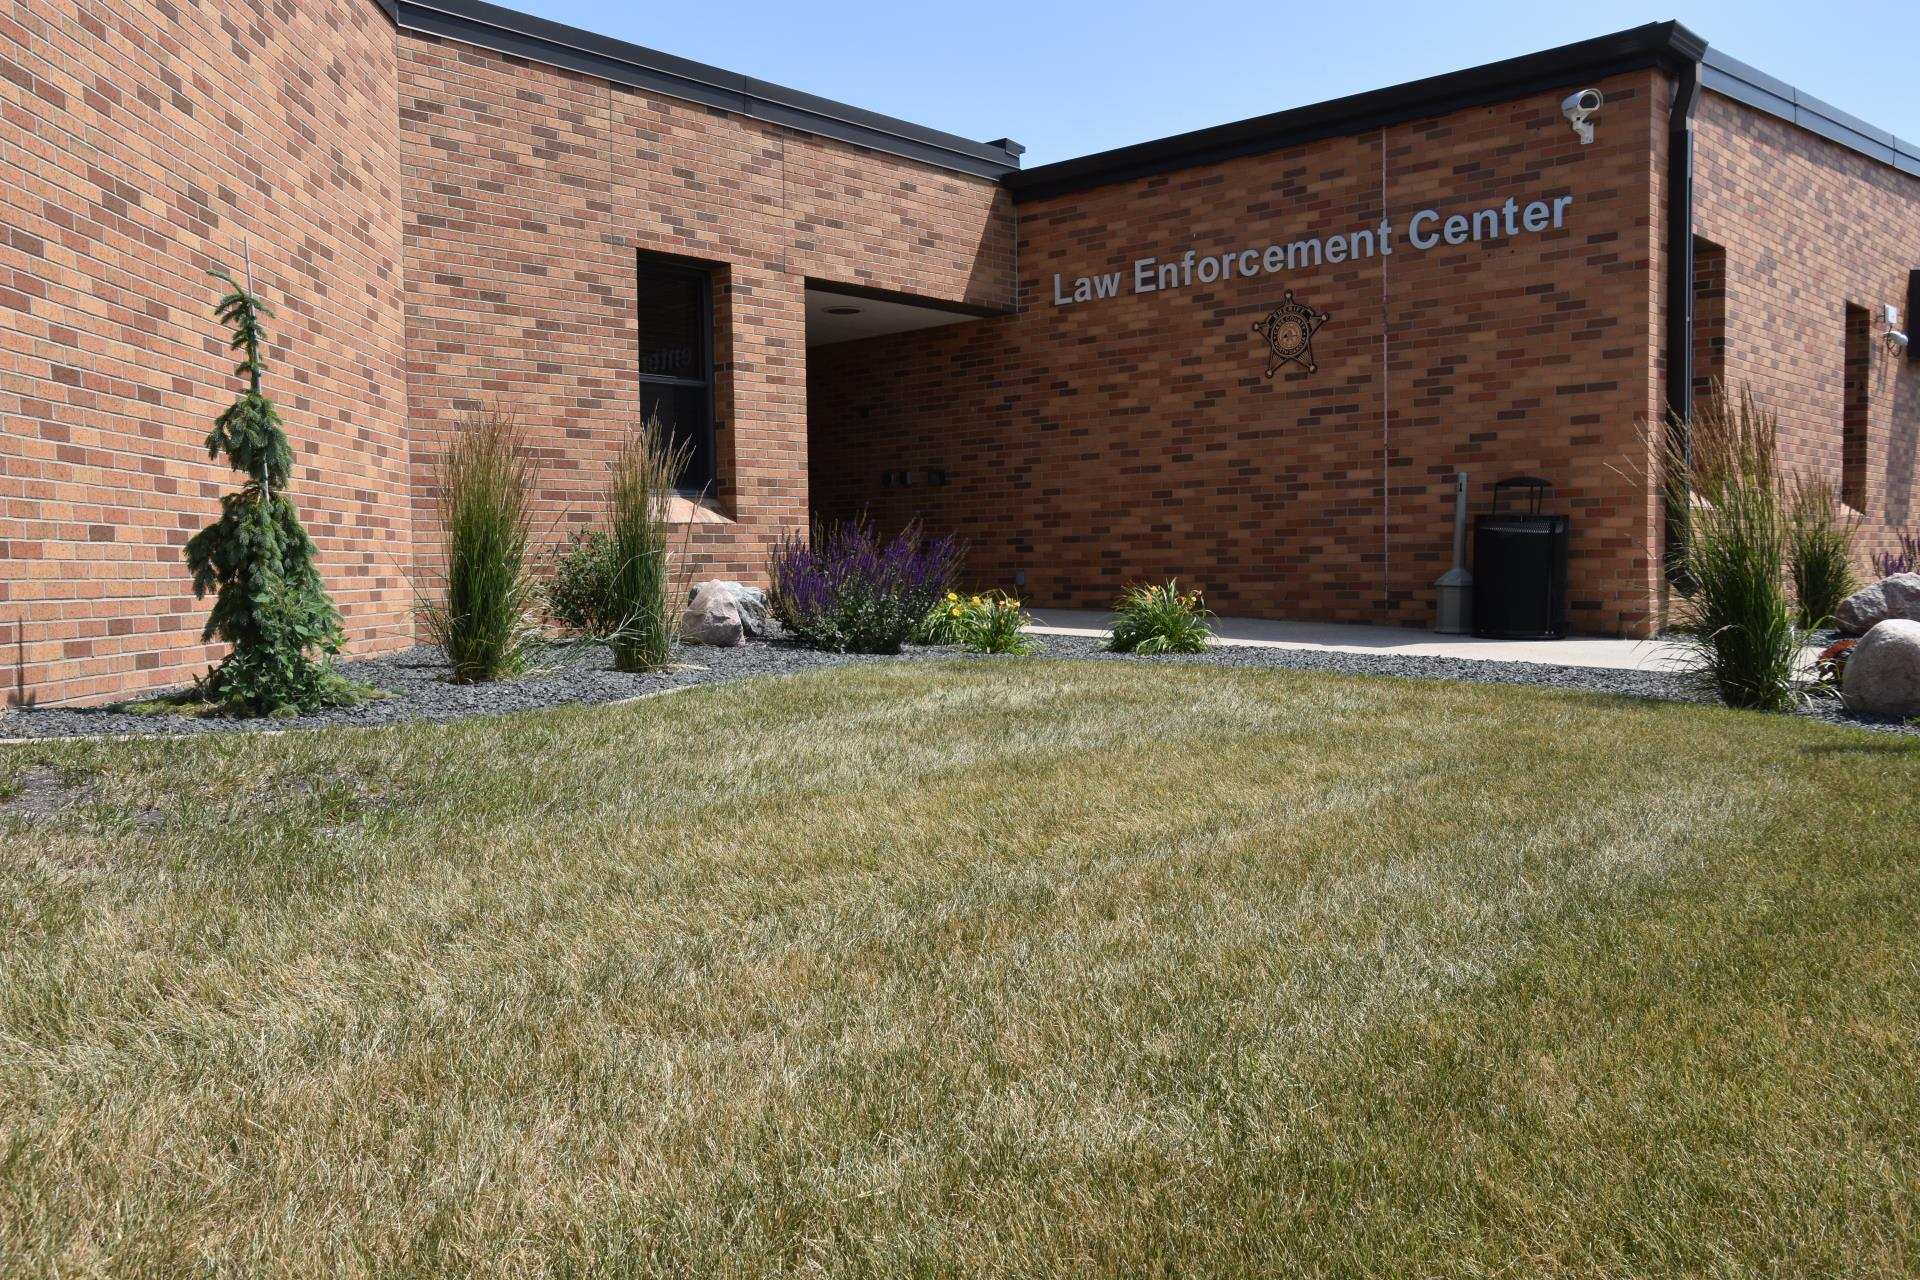 Cass County Law Enforcement Center